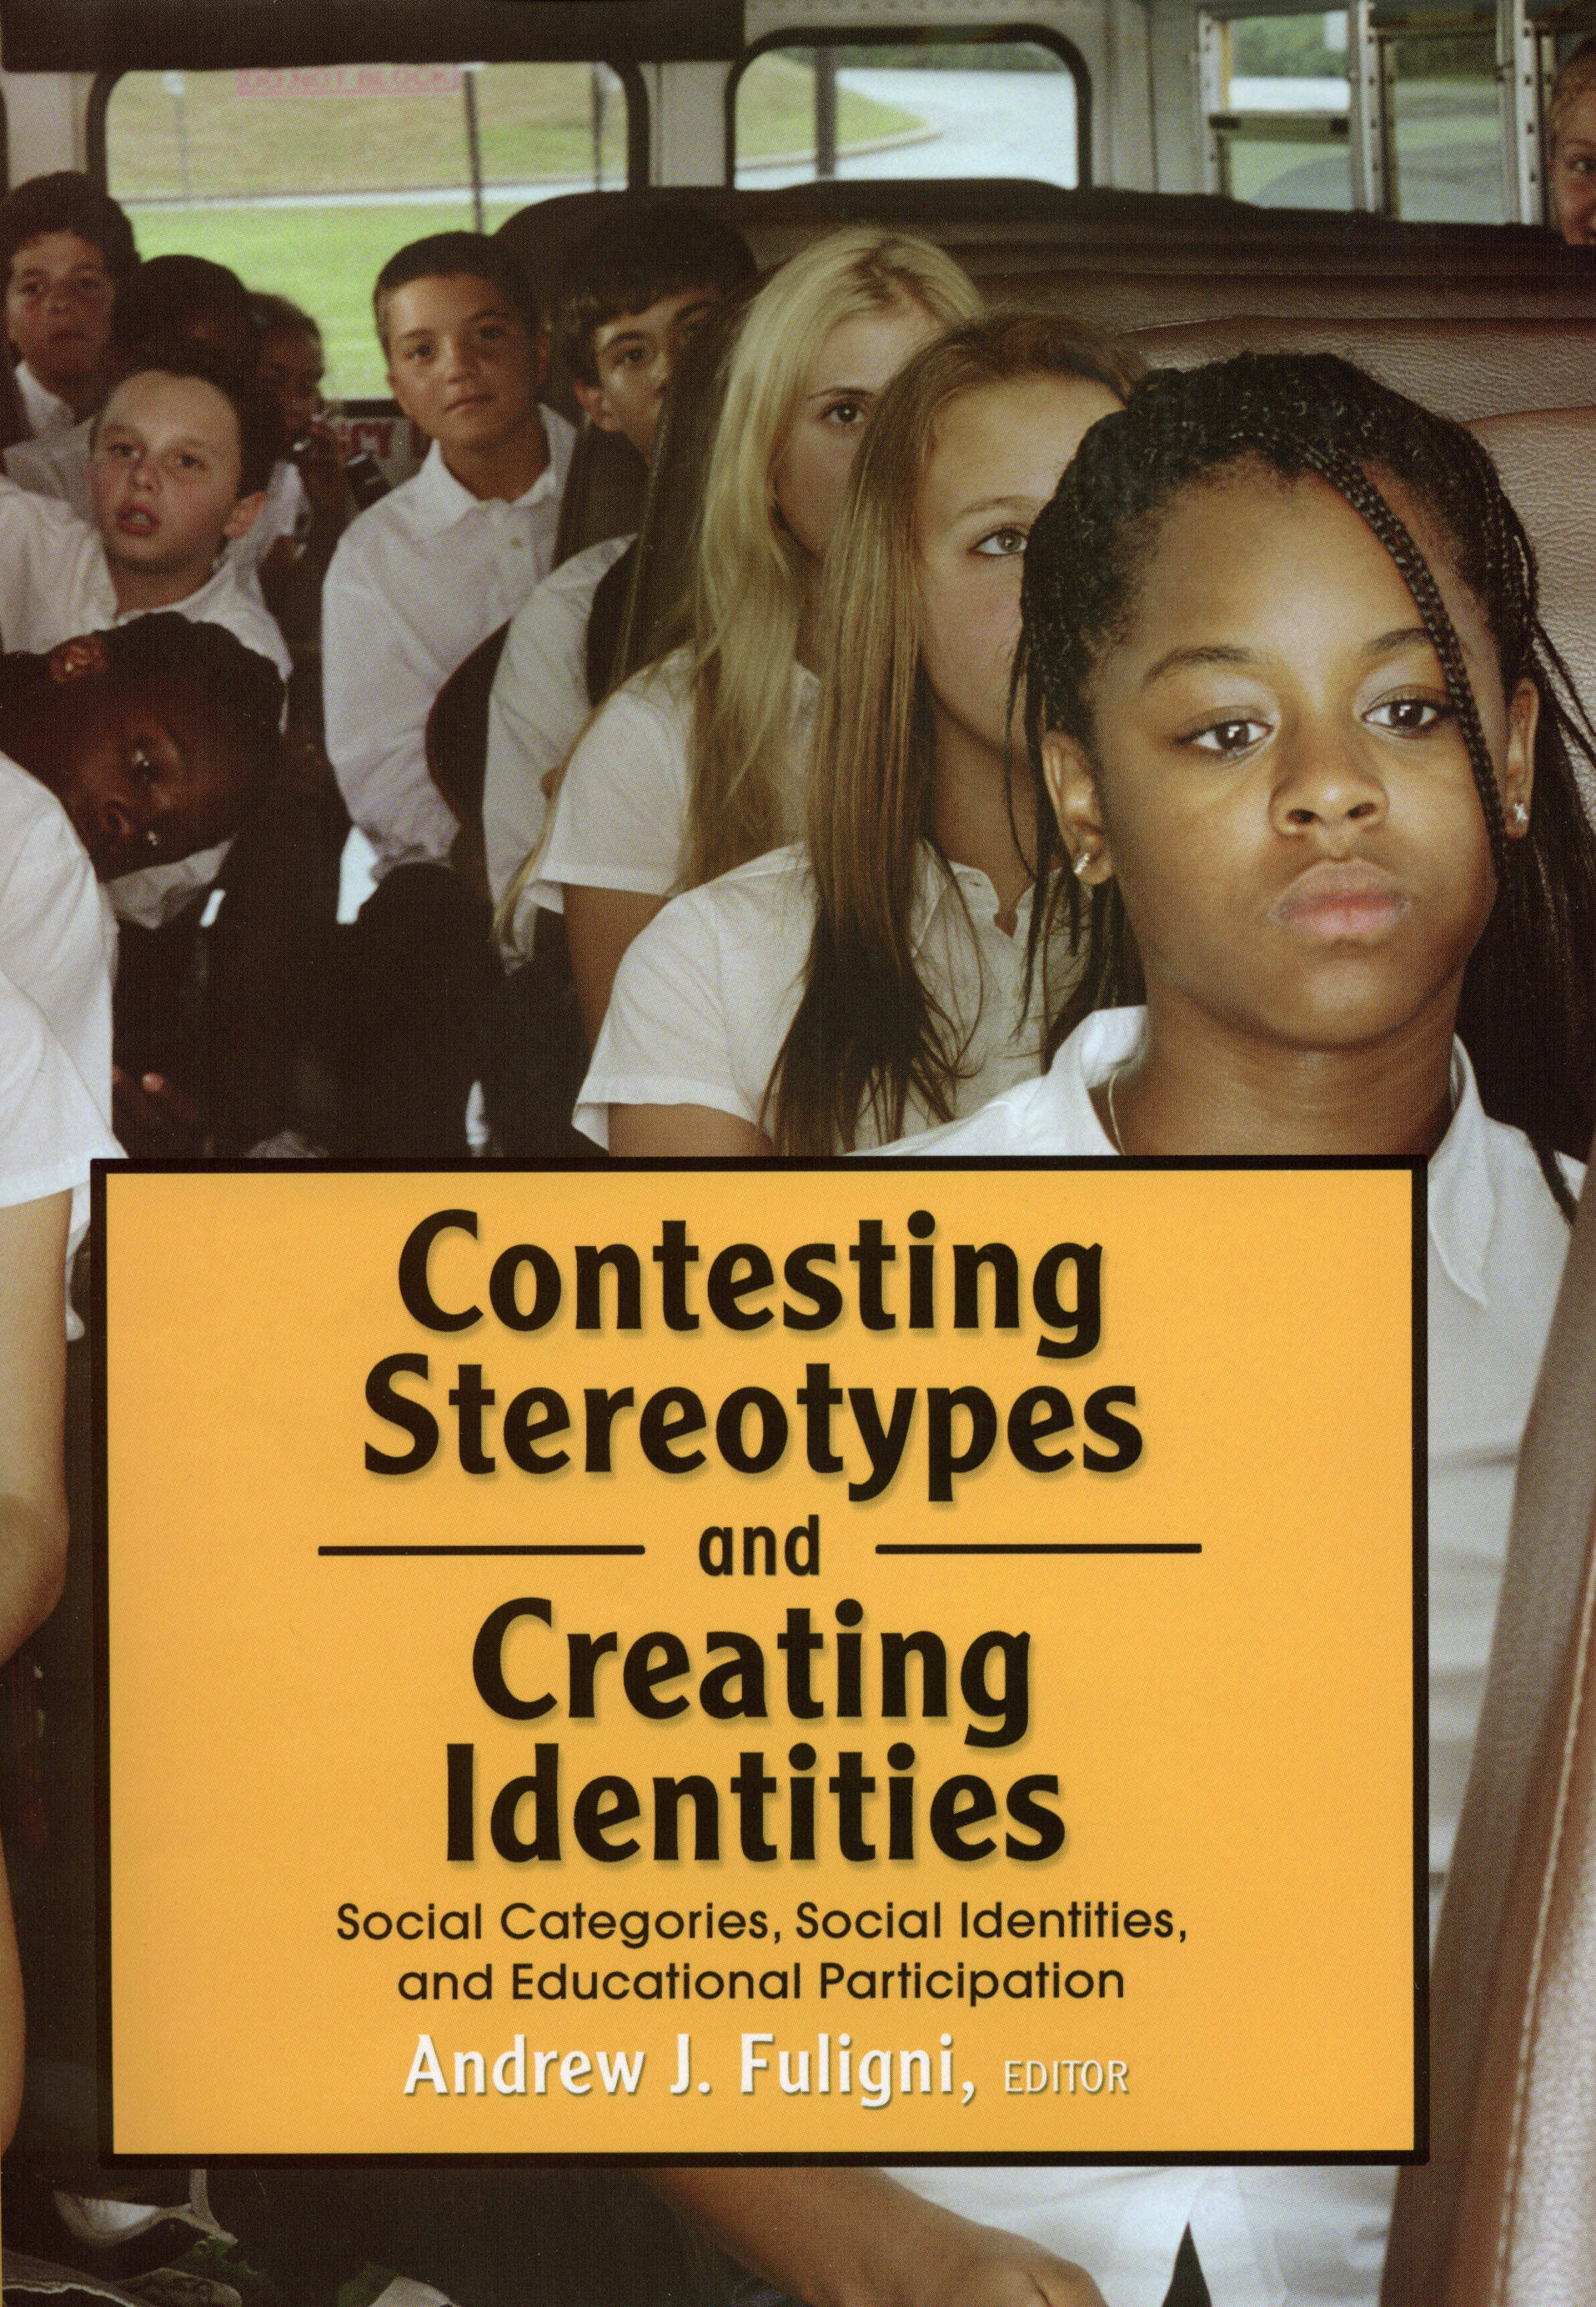 Contesting Stereotypes and Creating Identities